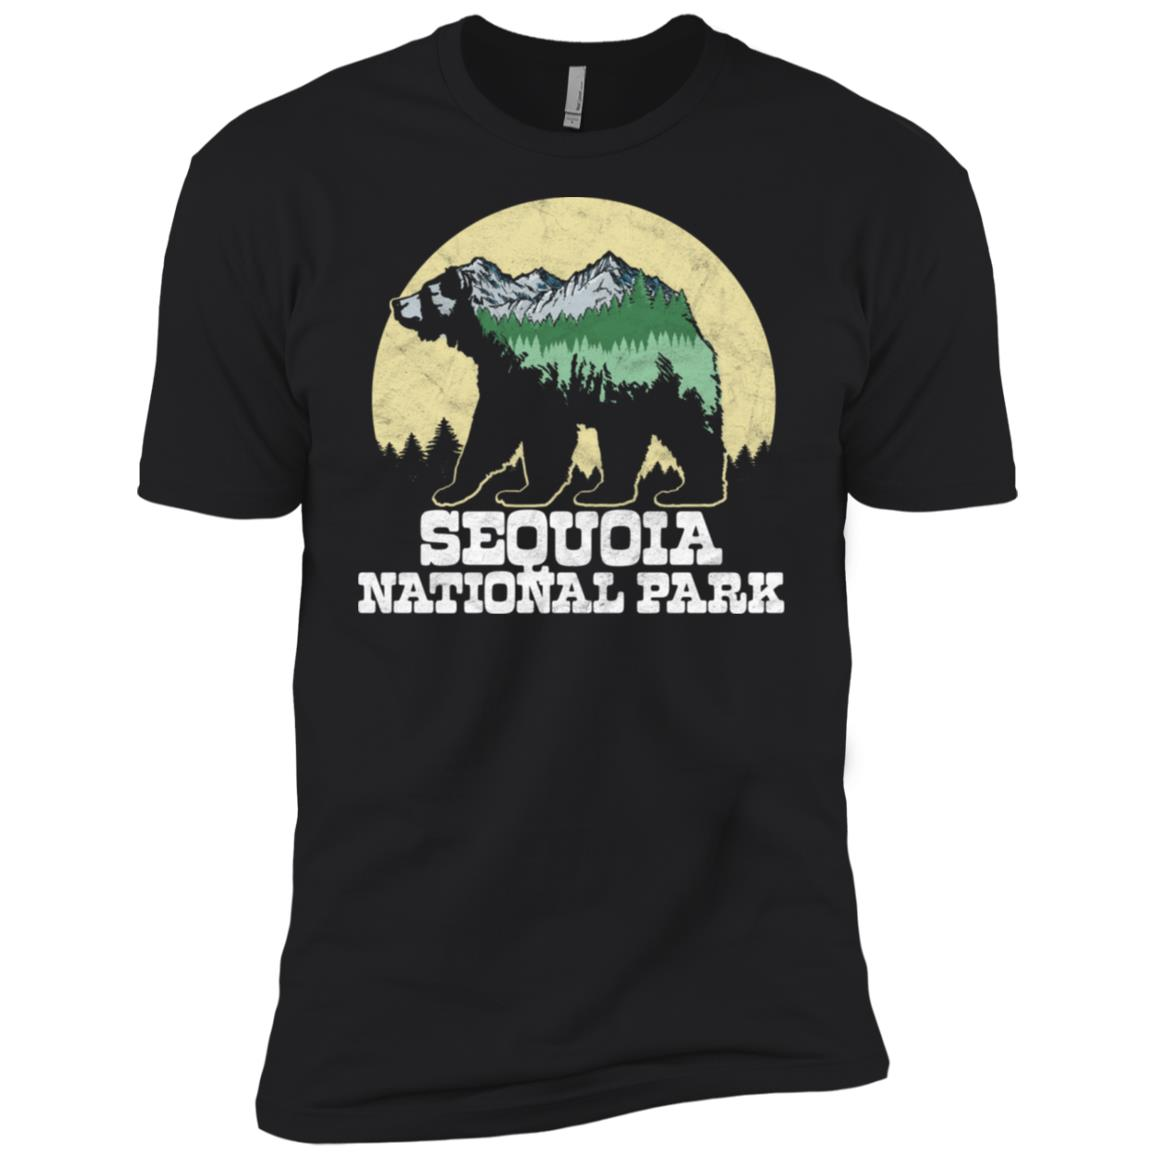 Sequoia National Park Bear Sketch Mountains Tee Men Short Sleeve T-Shirt